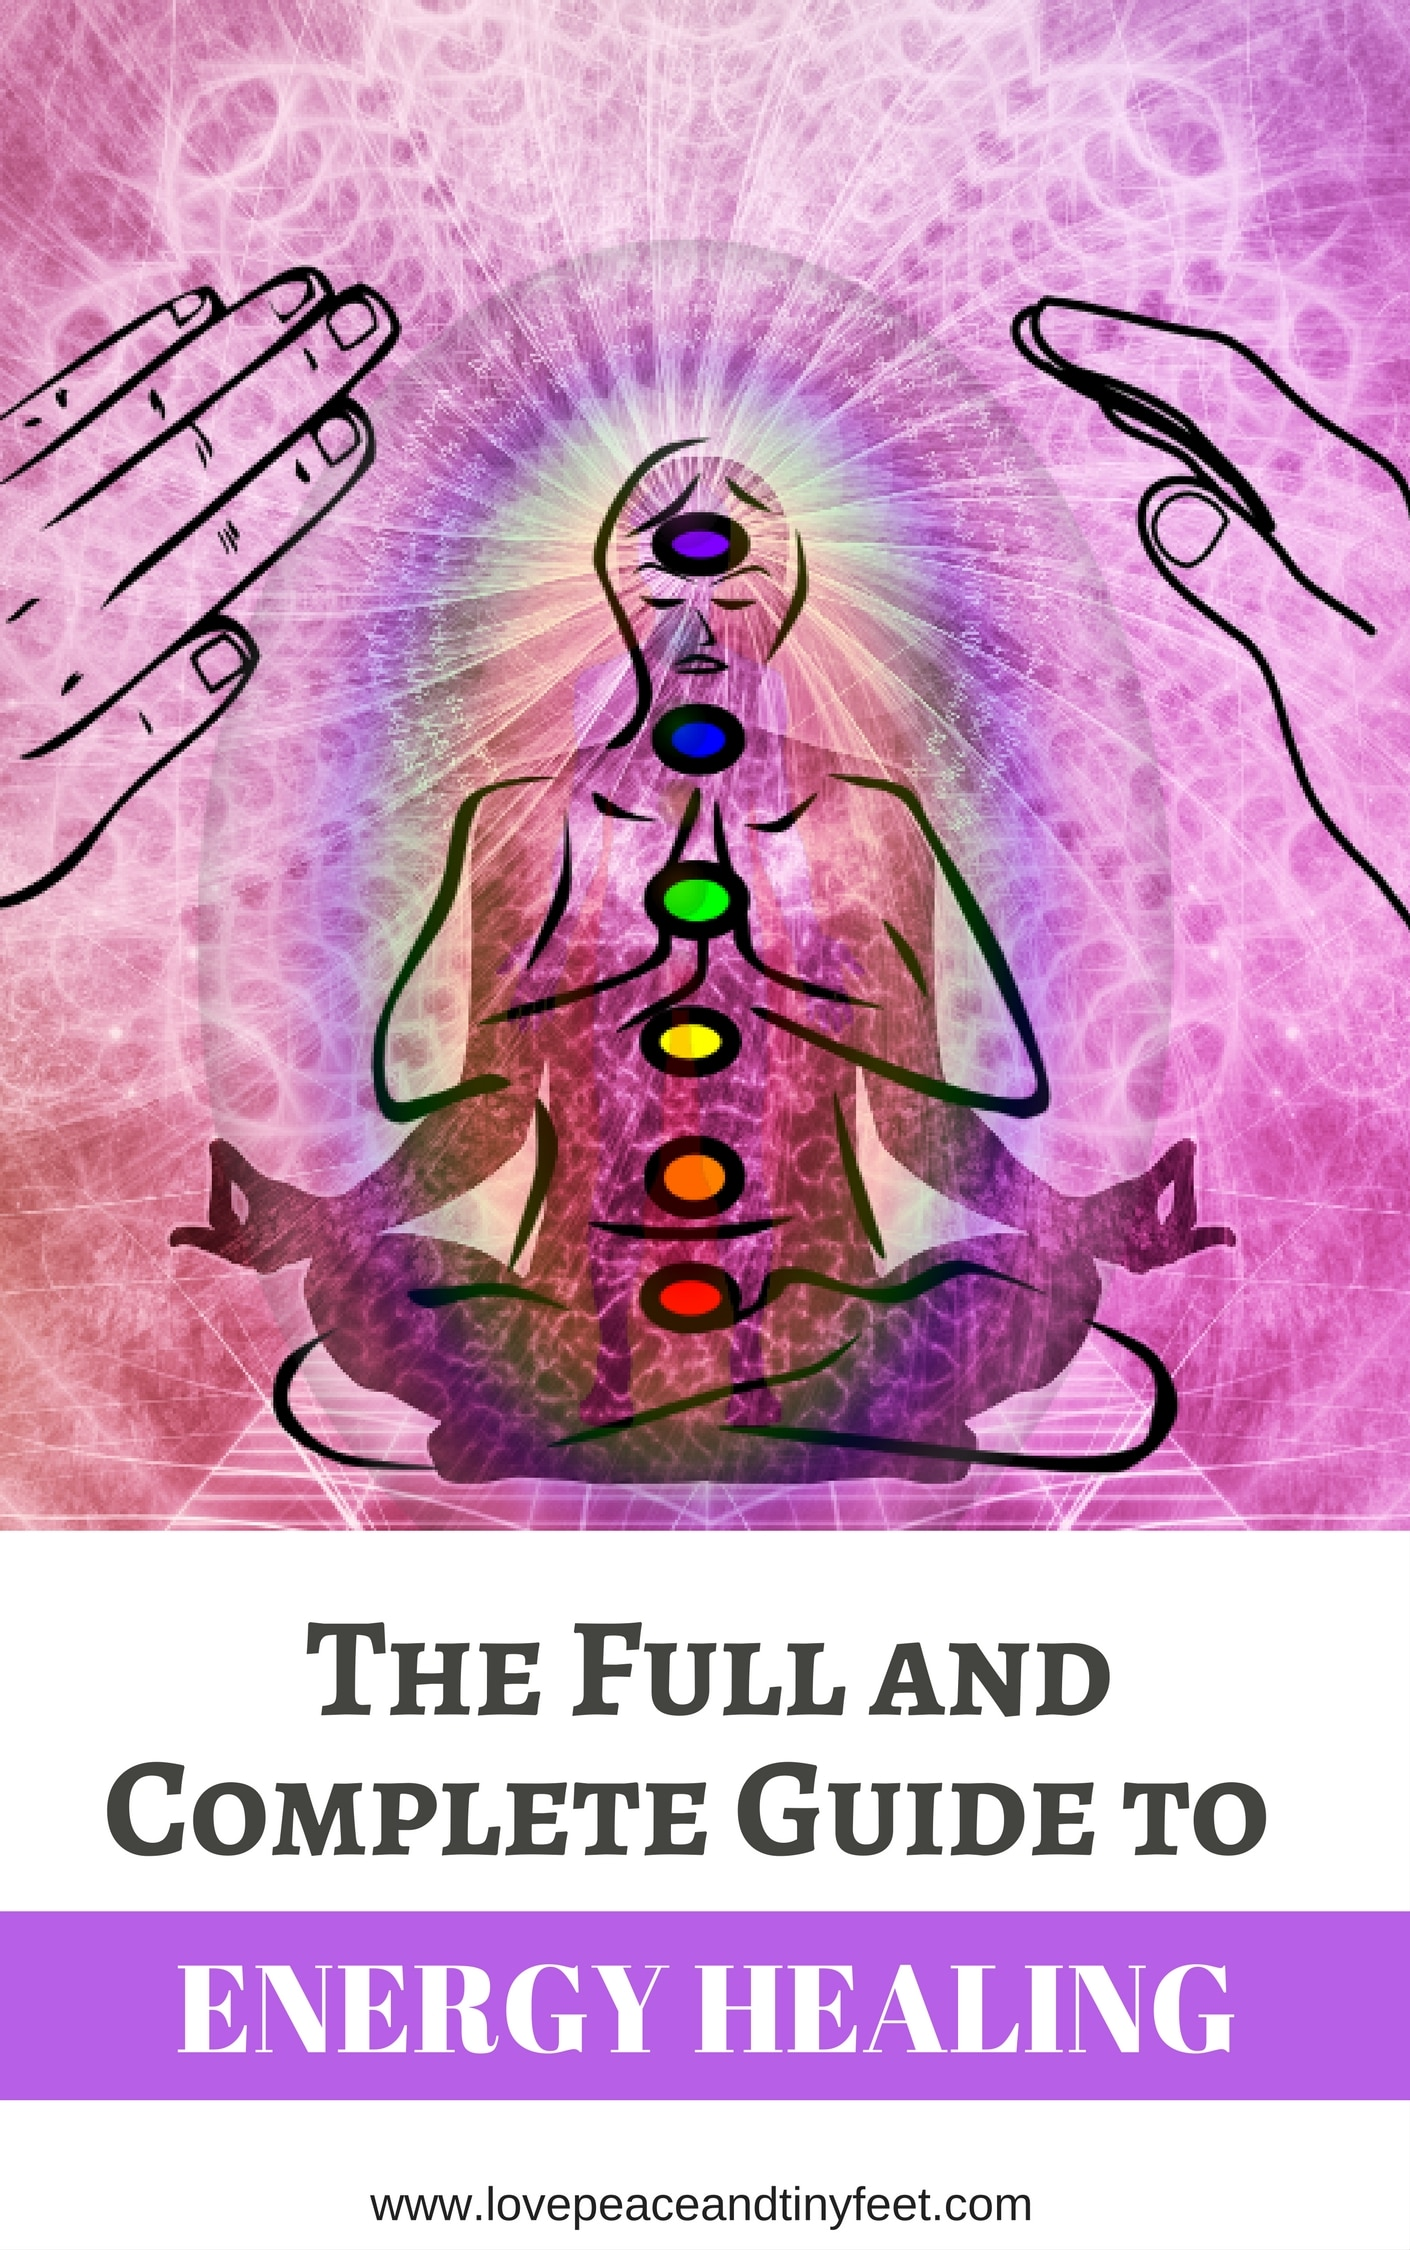 If you've wanted to learn more about energy healing - what it means, the different types of energy healing, what it entails, read on for a complete guide to reiki, chakra healing, aura cleansing and more.